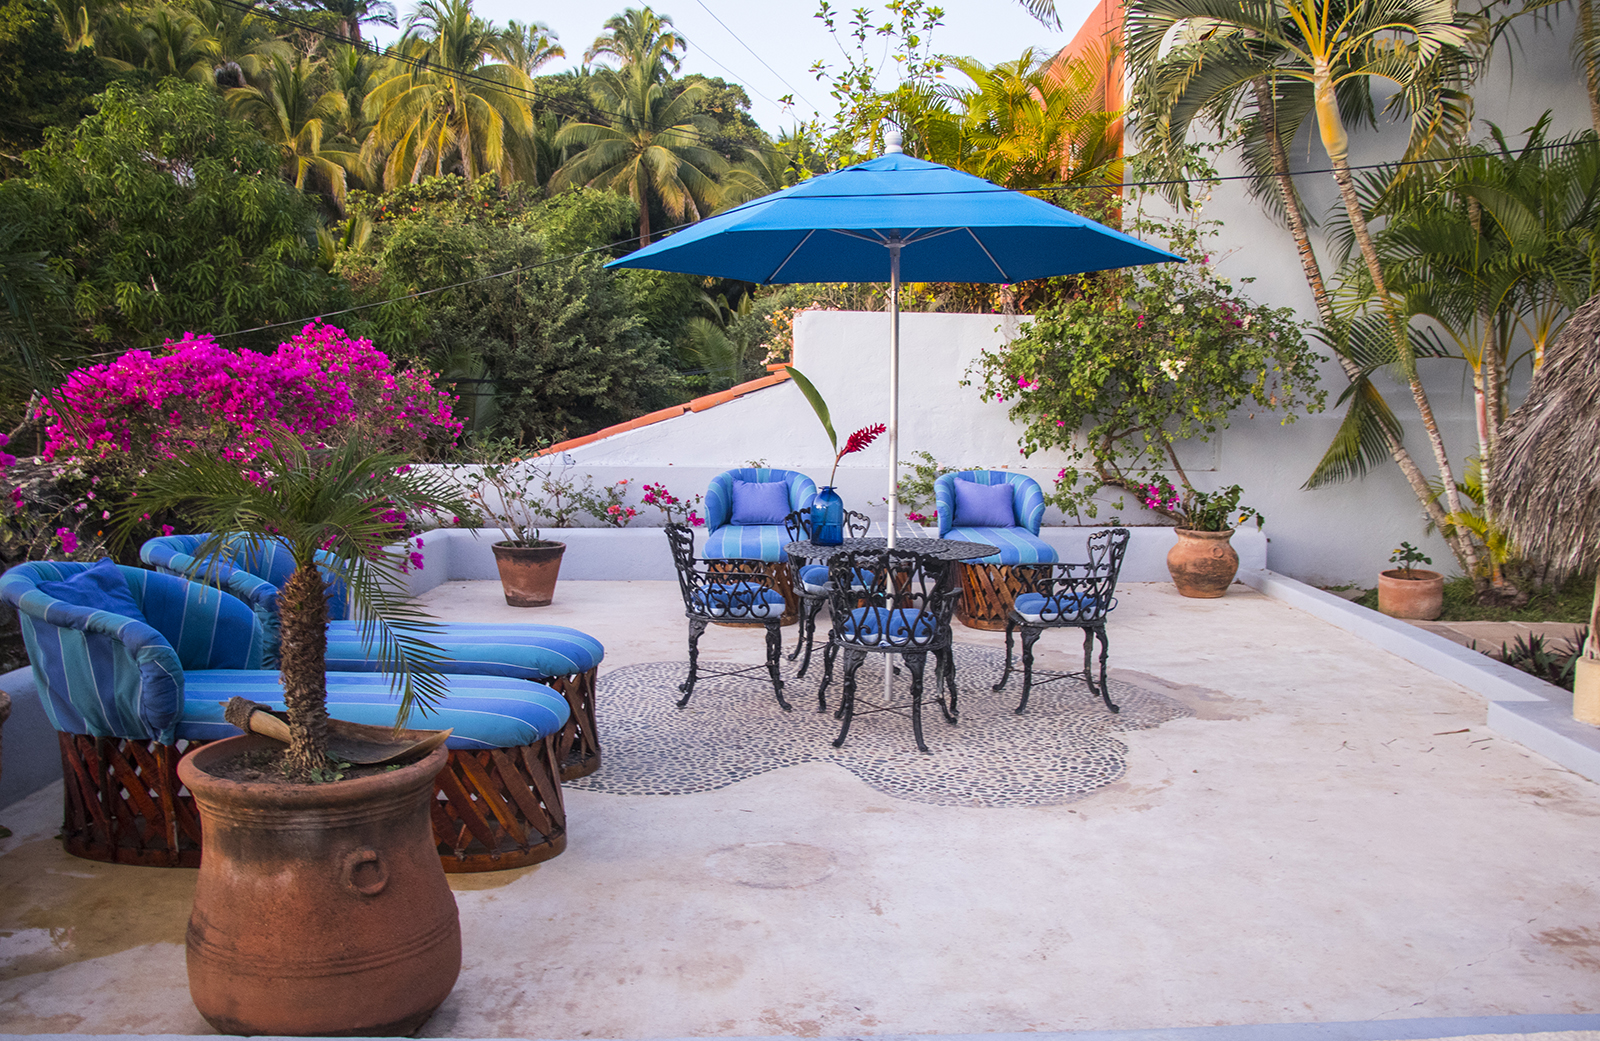 Patio area next to the pool at our stunning vacation rental property in San Pancho, Mexico